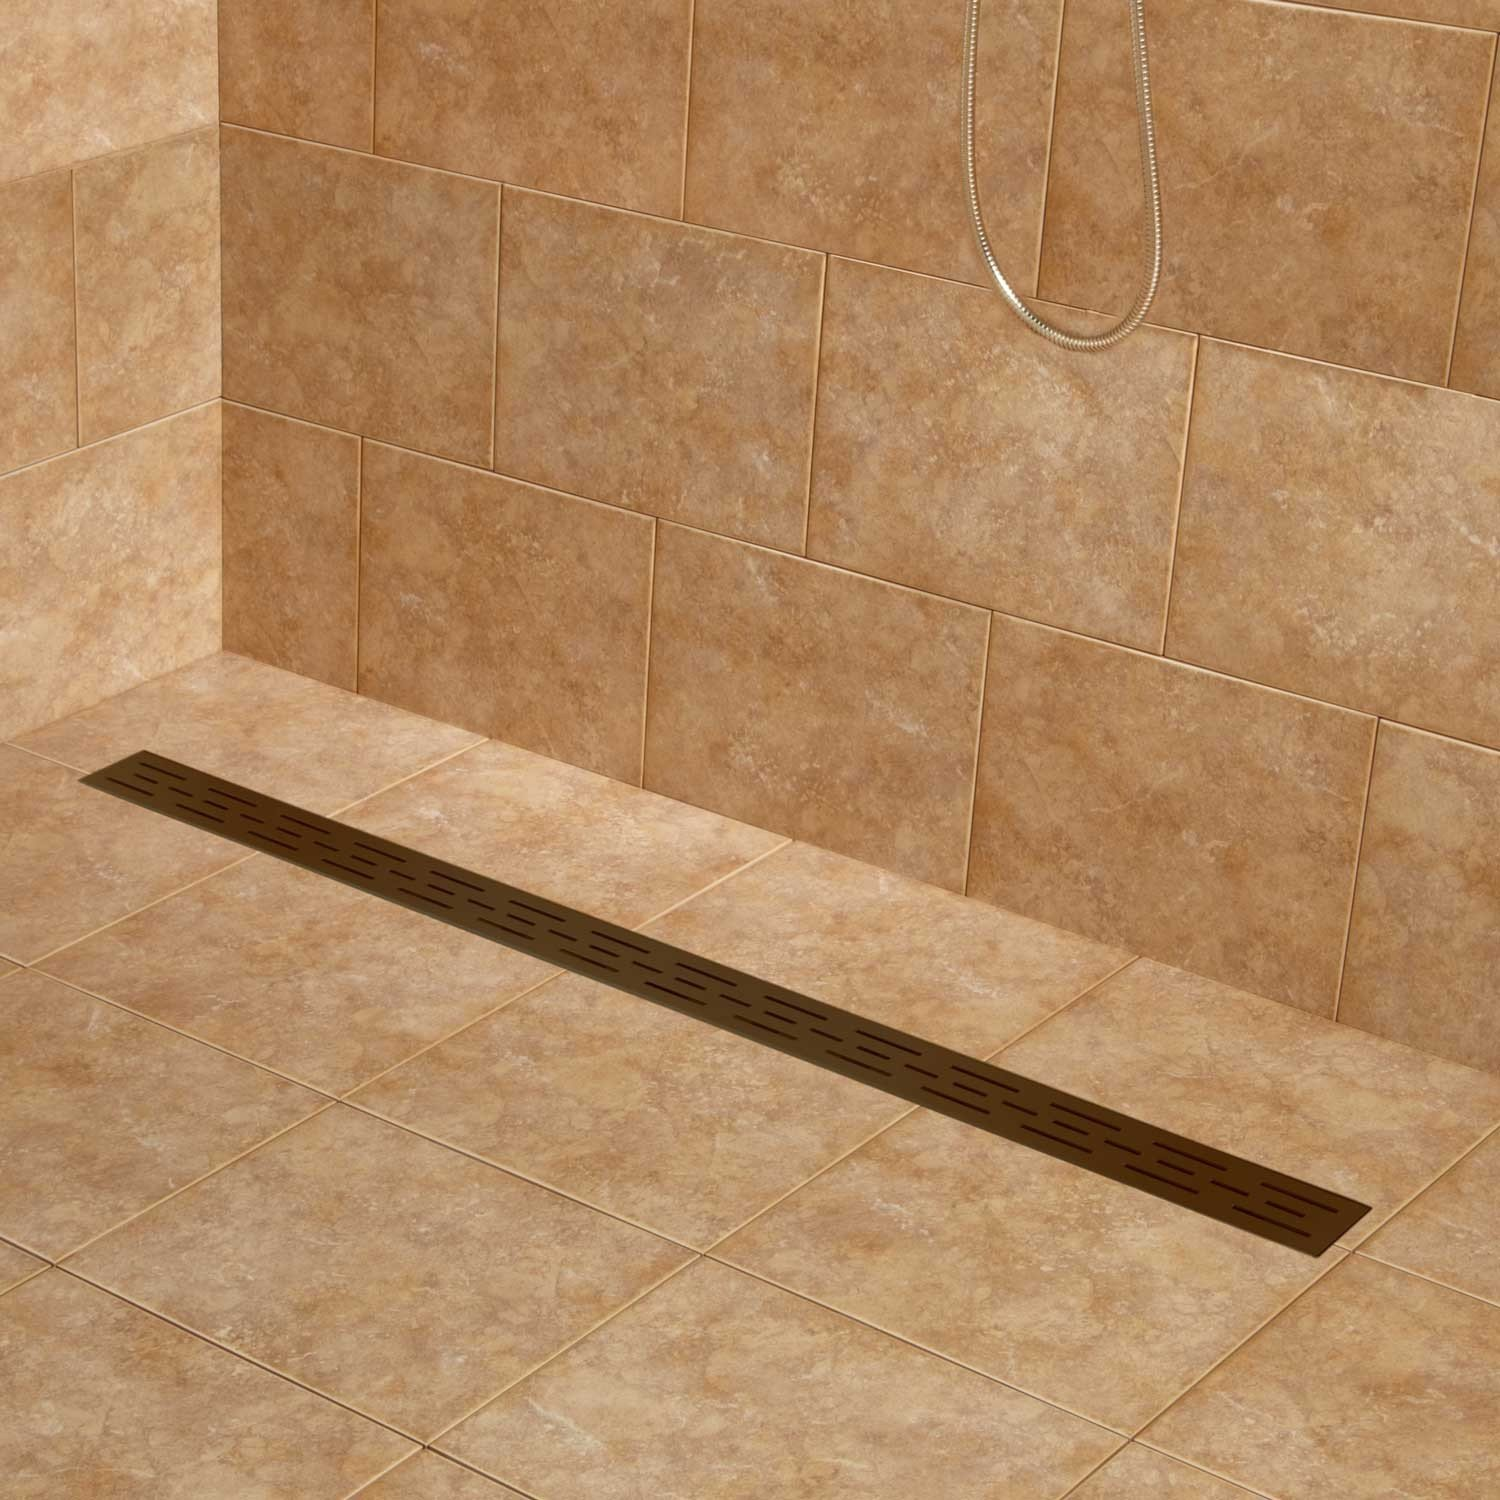 Naiture 60'' Stainless Steel Linear Shower Floor Drain With Drain Flange In Oil Rubbed Bronze Finish